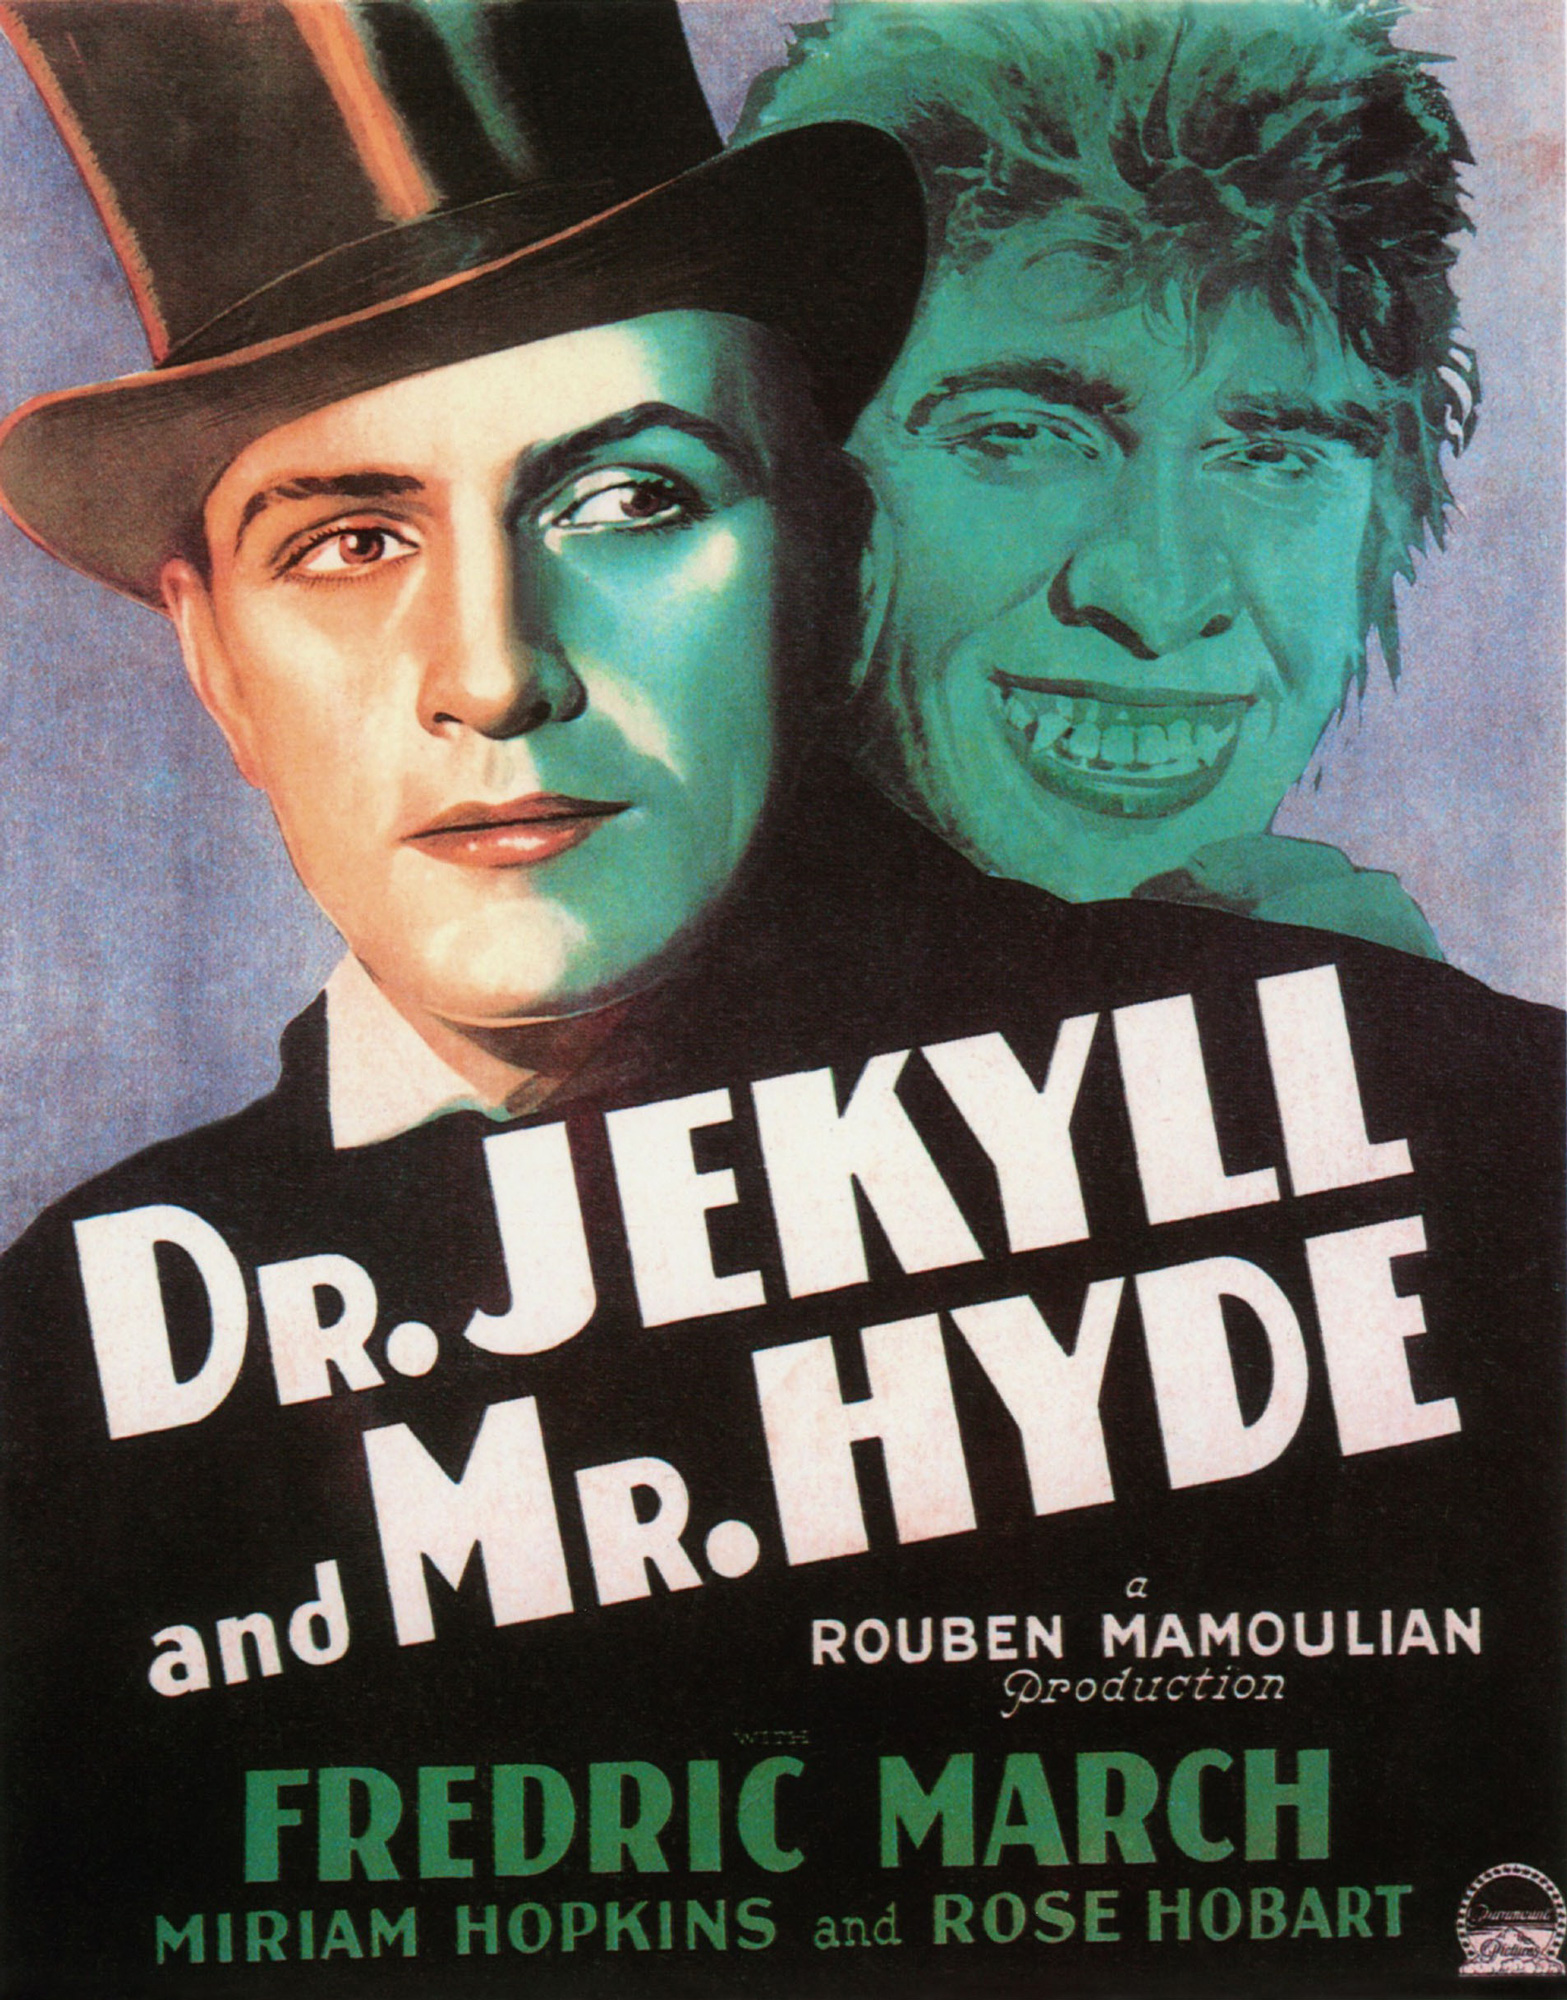 Poster depicting Jekyll and Hyde from the film adaptation starring Fredric March